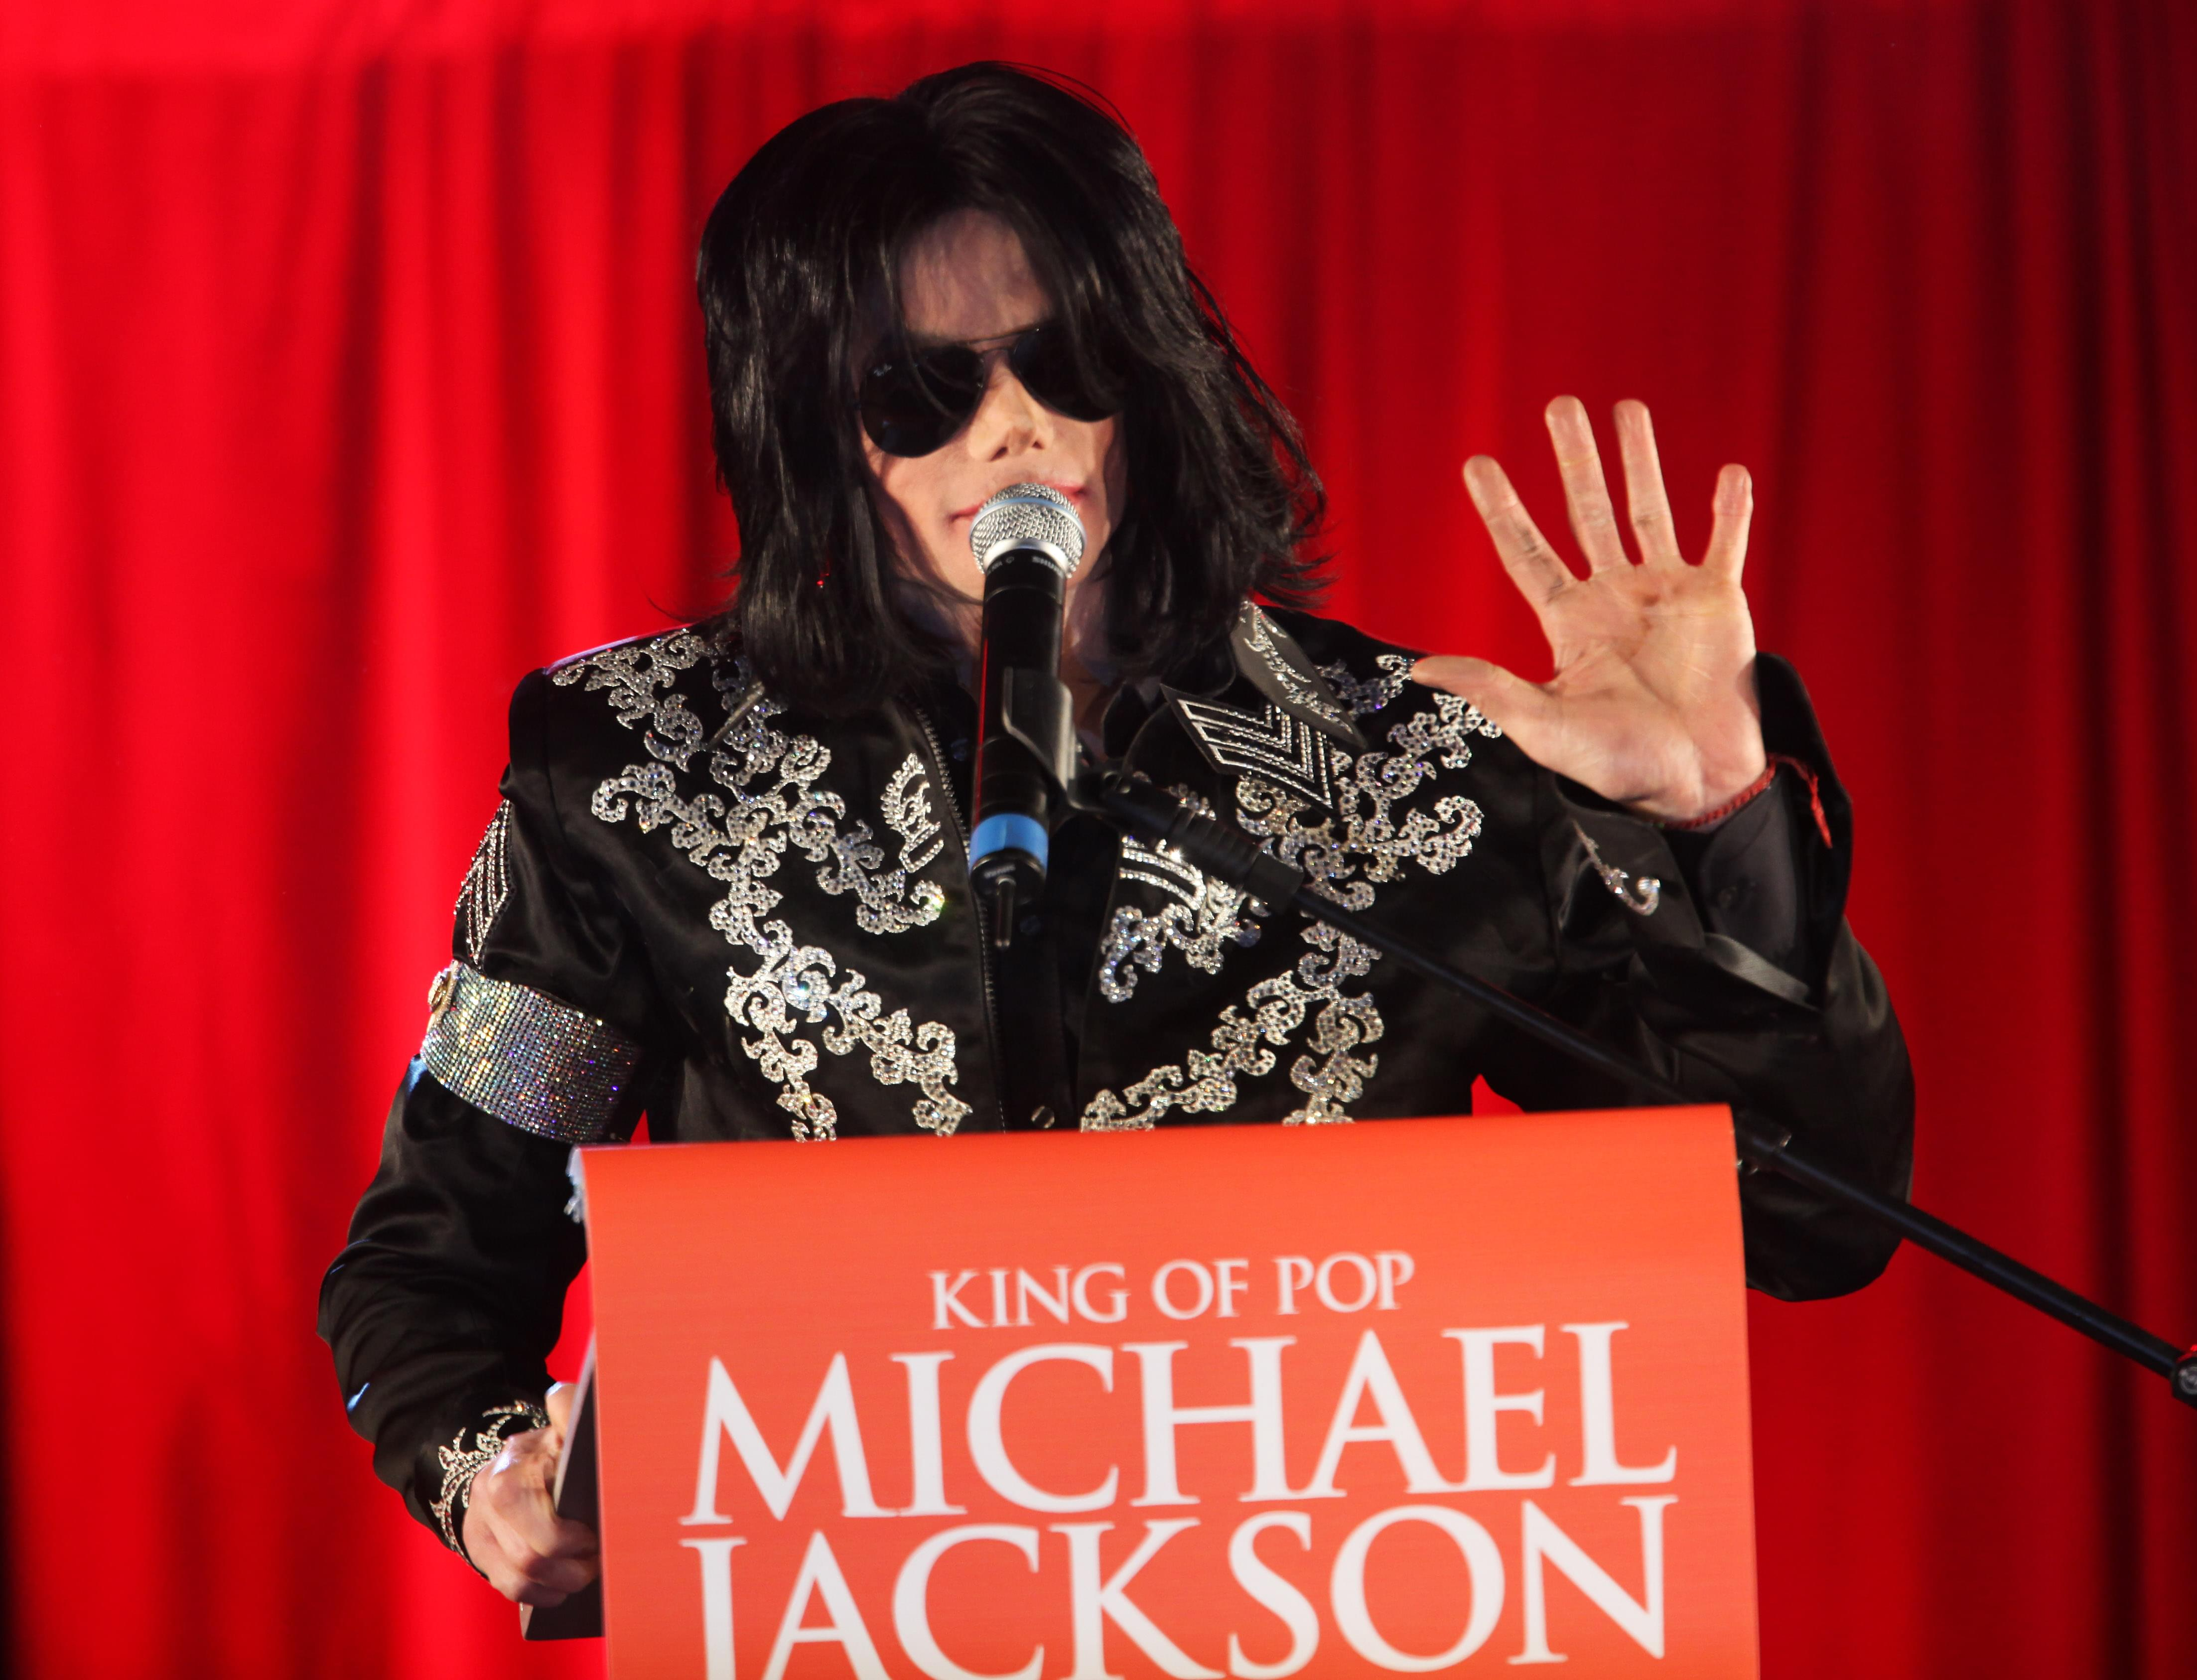 Michael Jackson's 'Thriller' Album Is No Longer Best Selling Album Of All Time